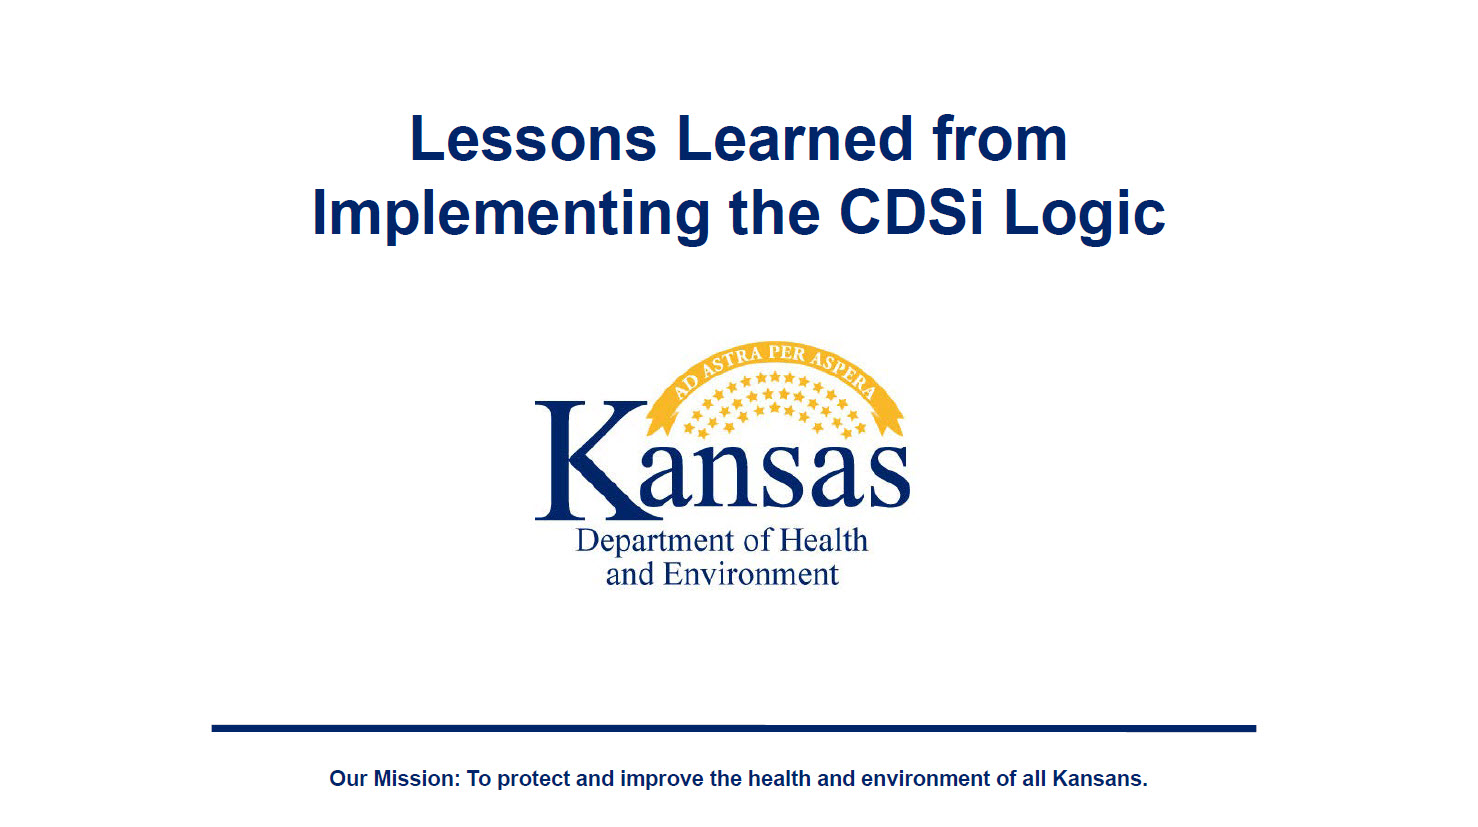 Lessons Learned from Implementing the CDSi Logic